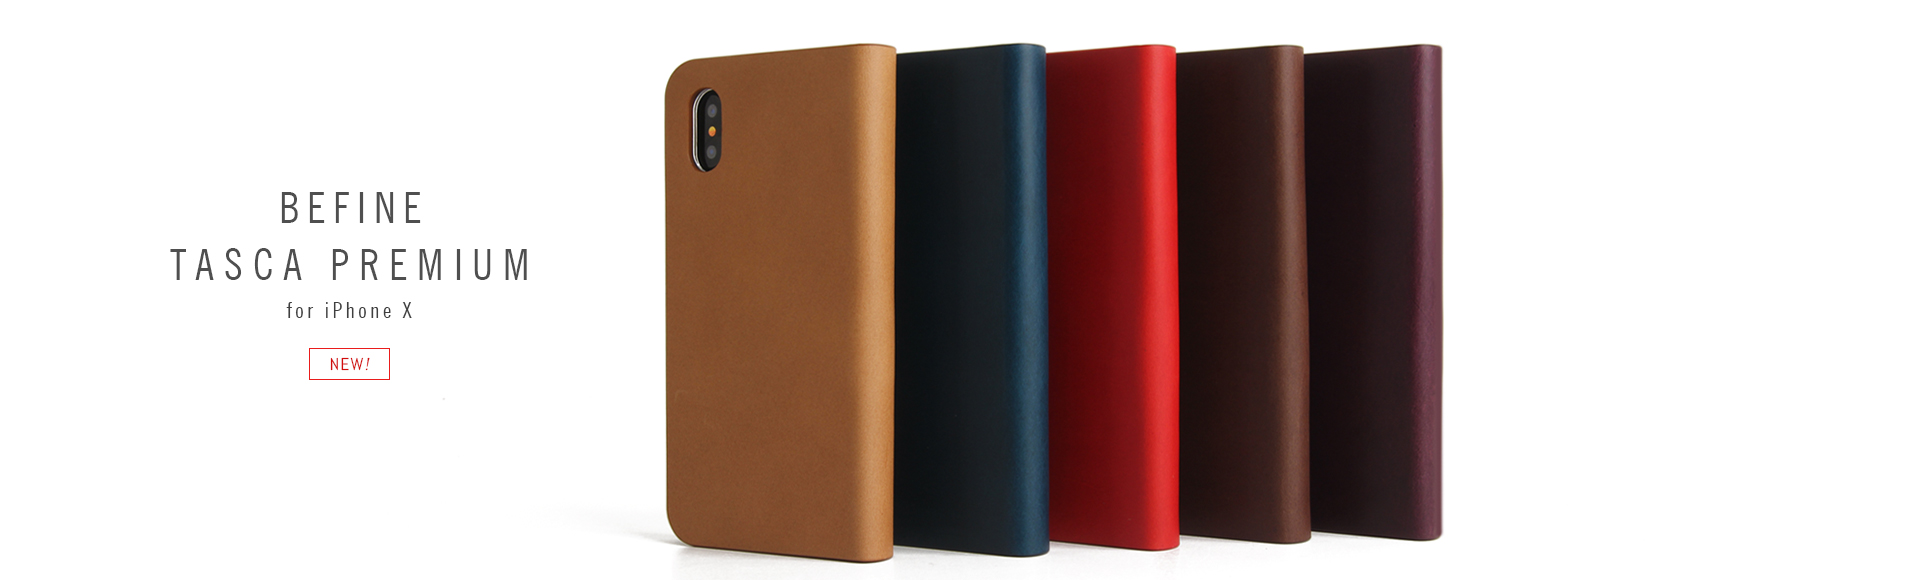 BEFINE tasca Cover premium for iPhone X